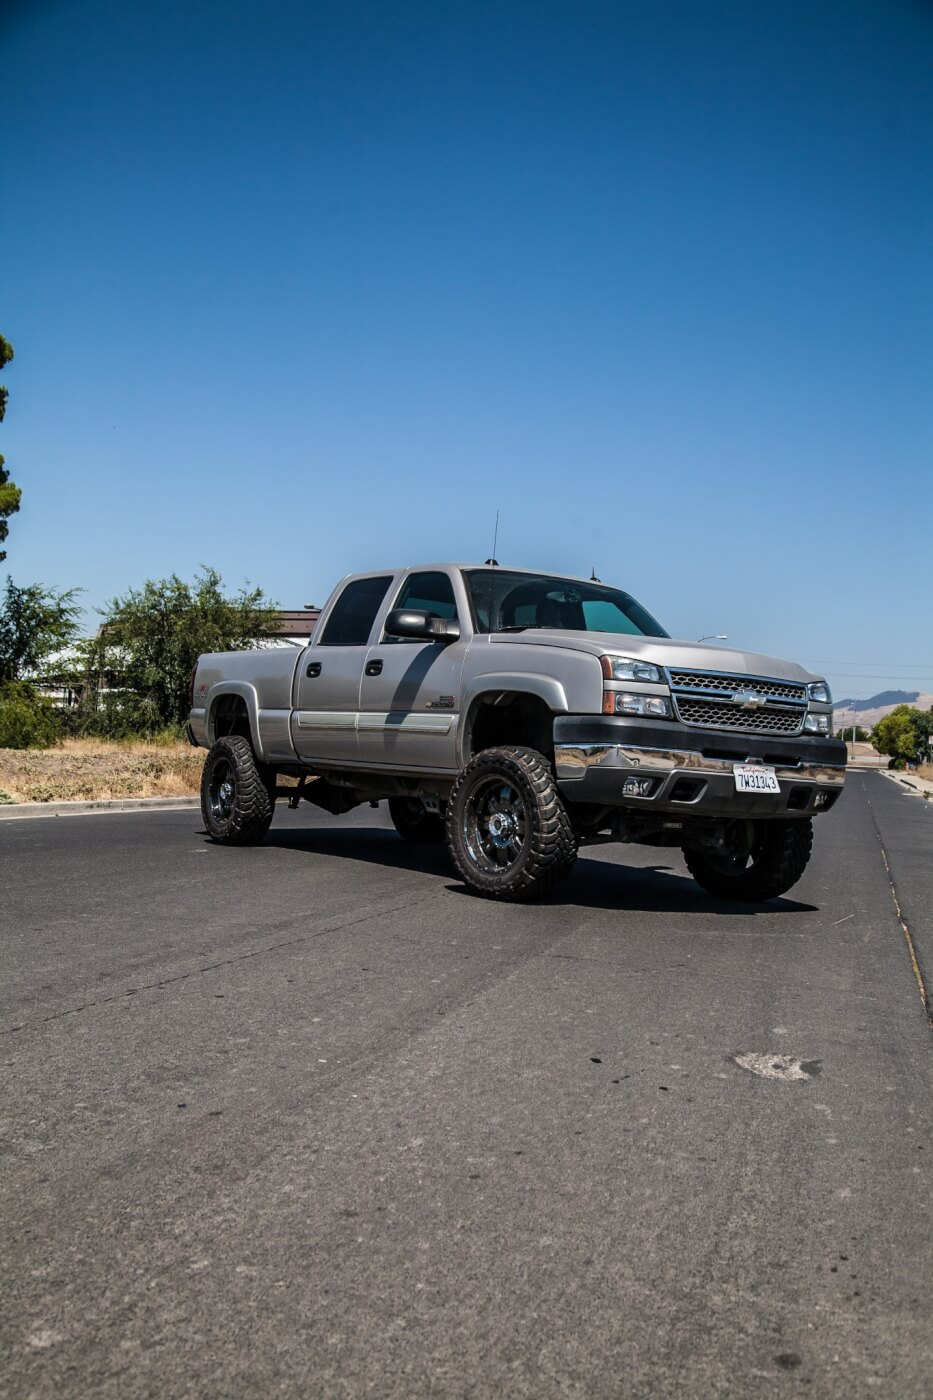 Matt Kutchera's LLY-equipped 2005 Silverado 2500 LTZ is fully loaded, has  ridiculously low